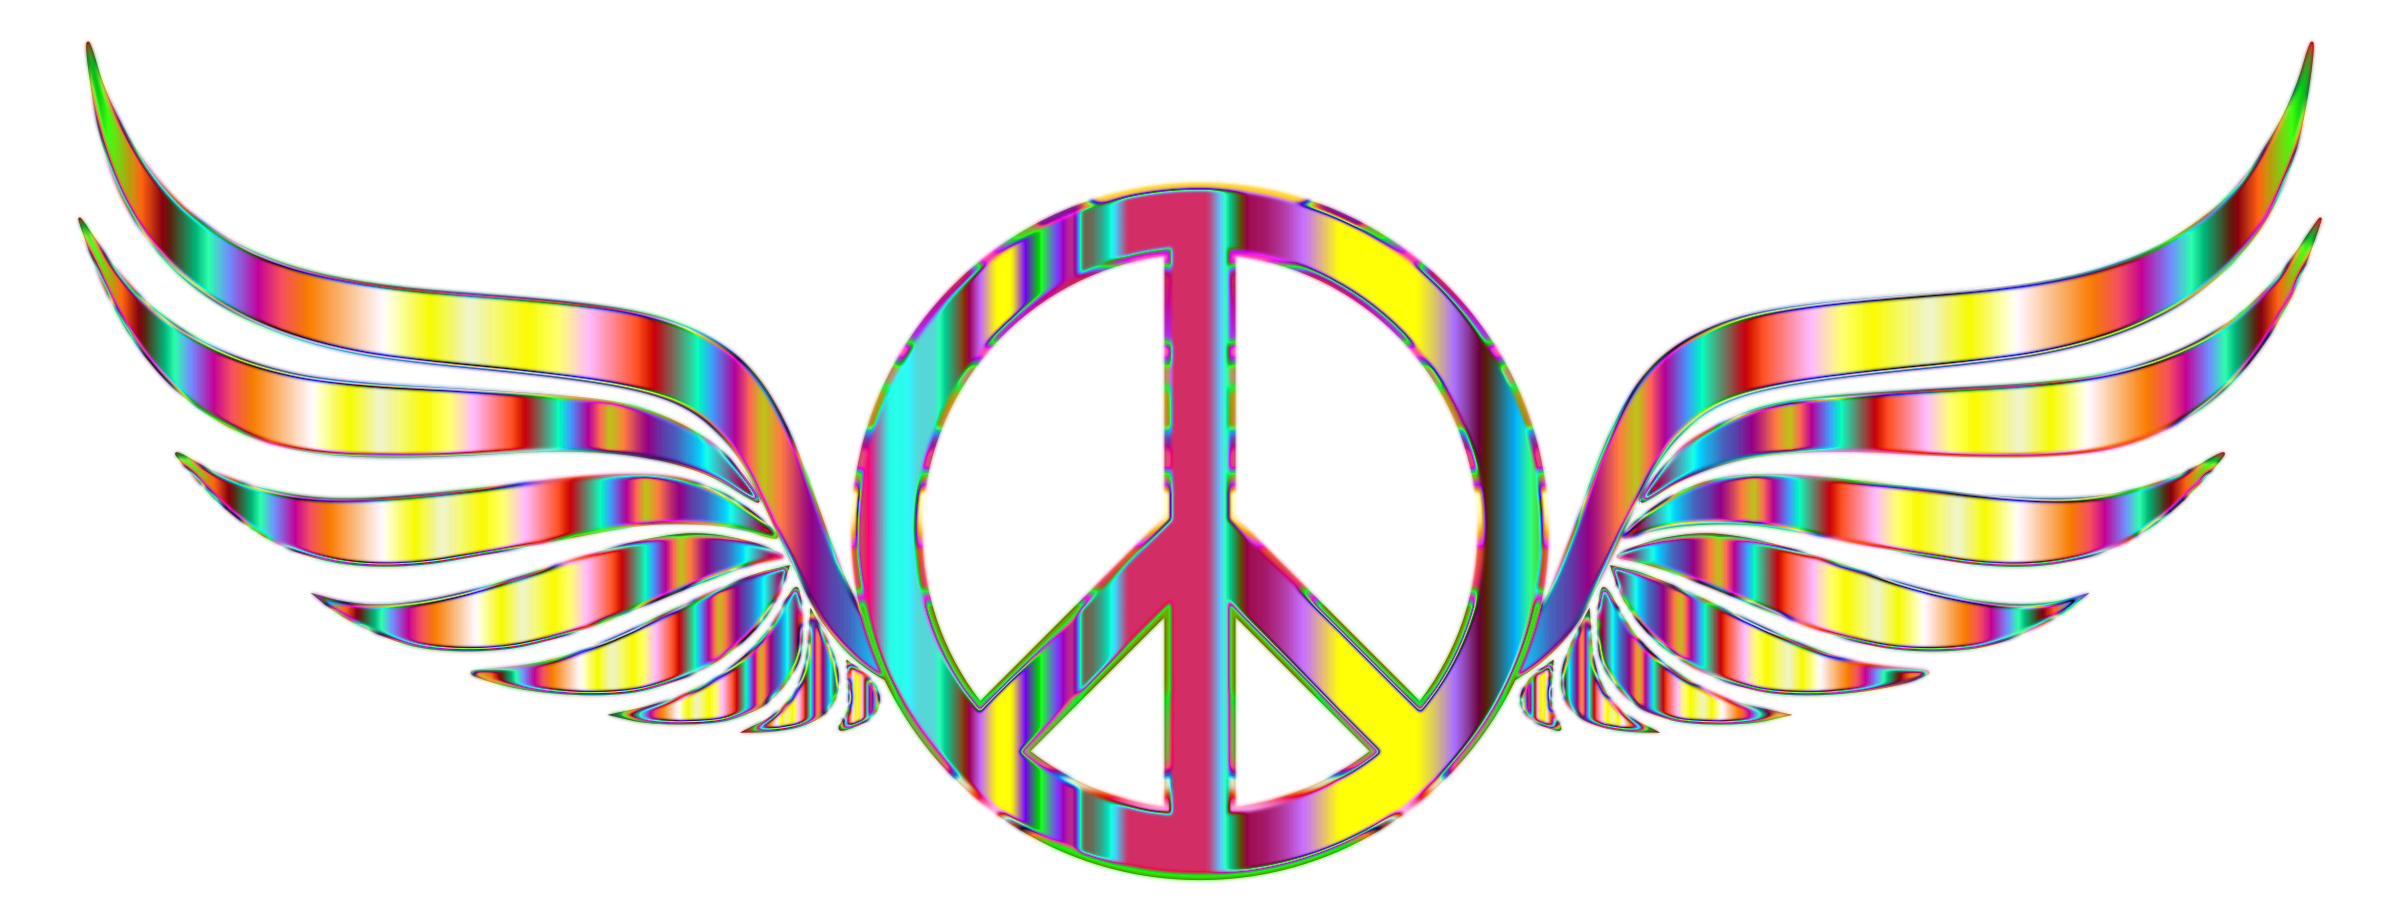 Hippie clipart transparent background peace. Gold sign wings psychedelic